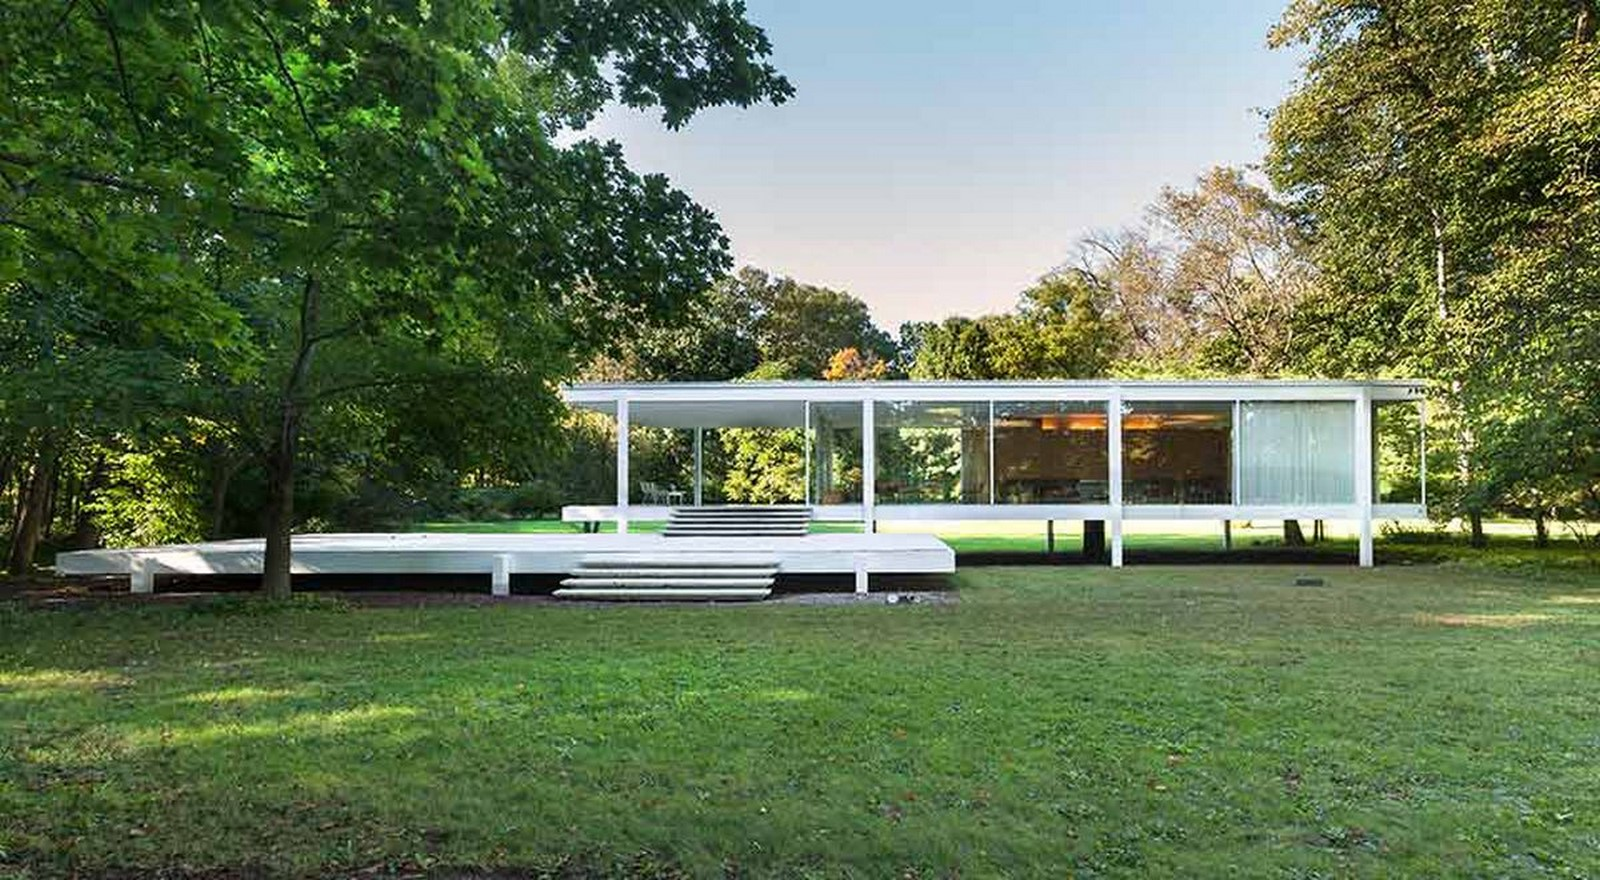 Farnsworth House, Illinois, Chicago, USA by Mies Van der Rohe - Sheet1